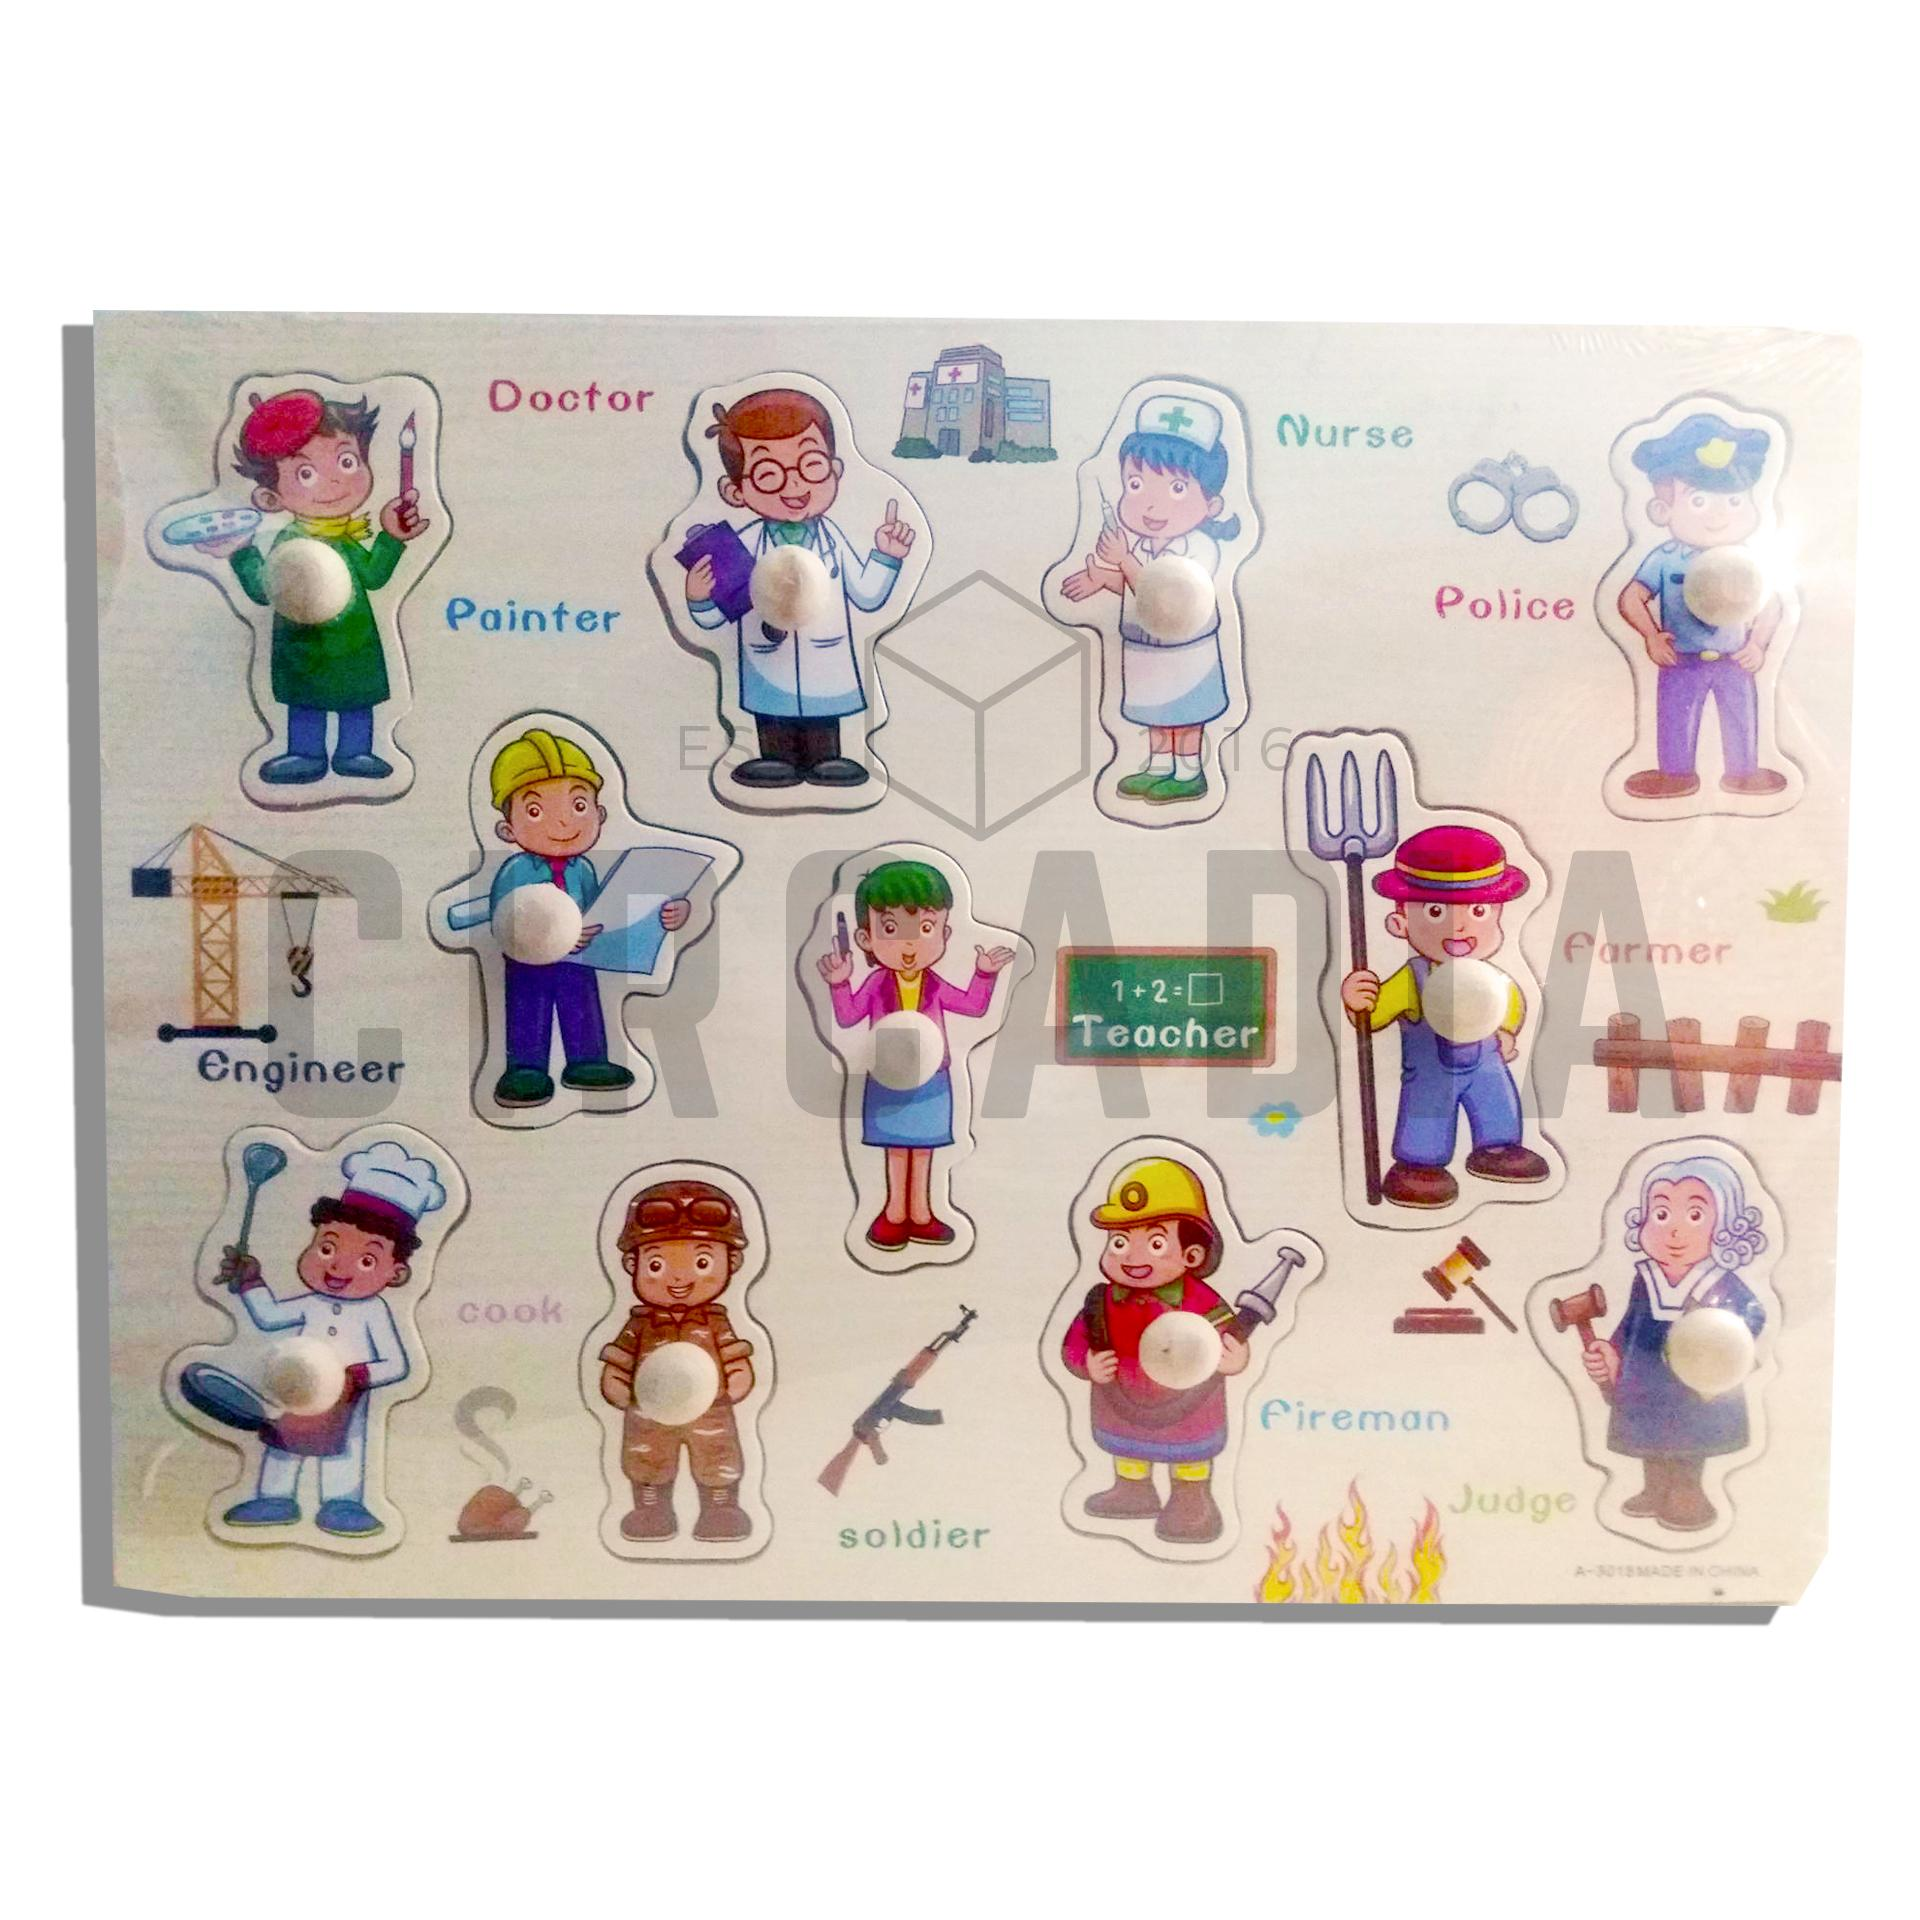 Pegged Puzzle For Sale Wooden Puzzles Online Brands Prices Knob Abc Education